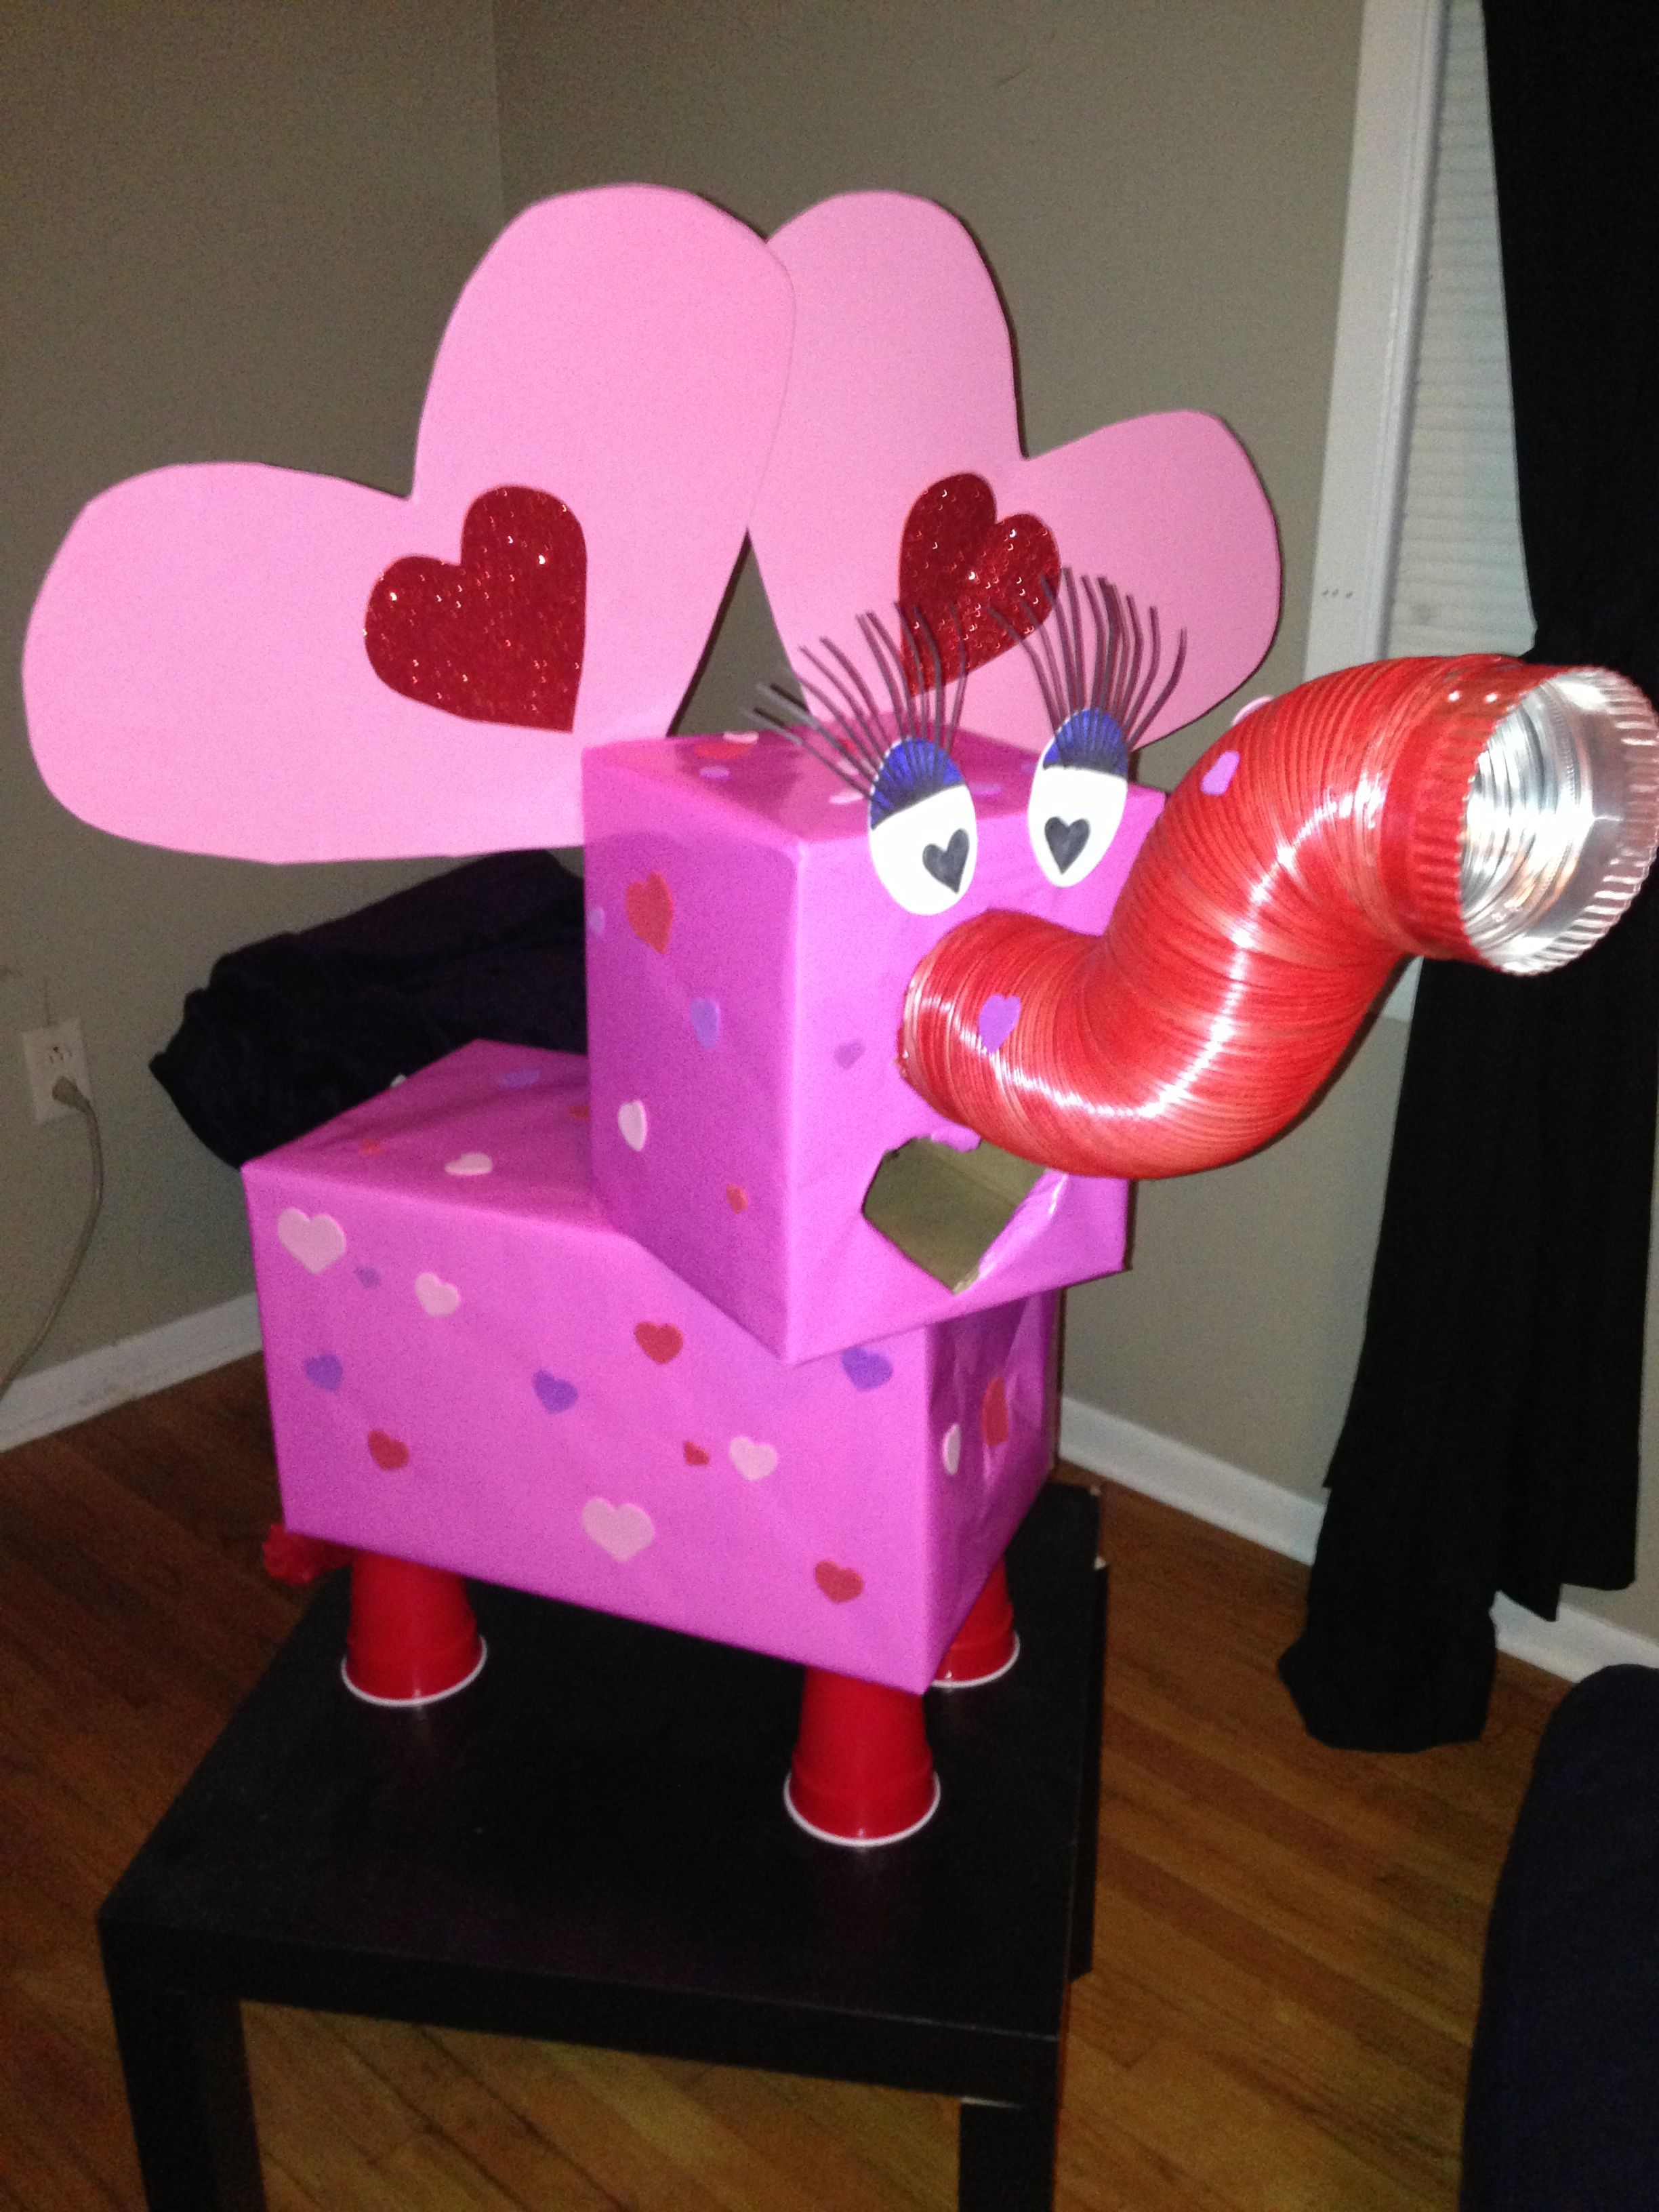 Jaleighs elephant valentine box  ideas for the kids  Pinterest